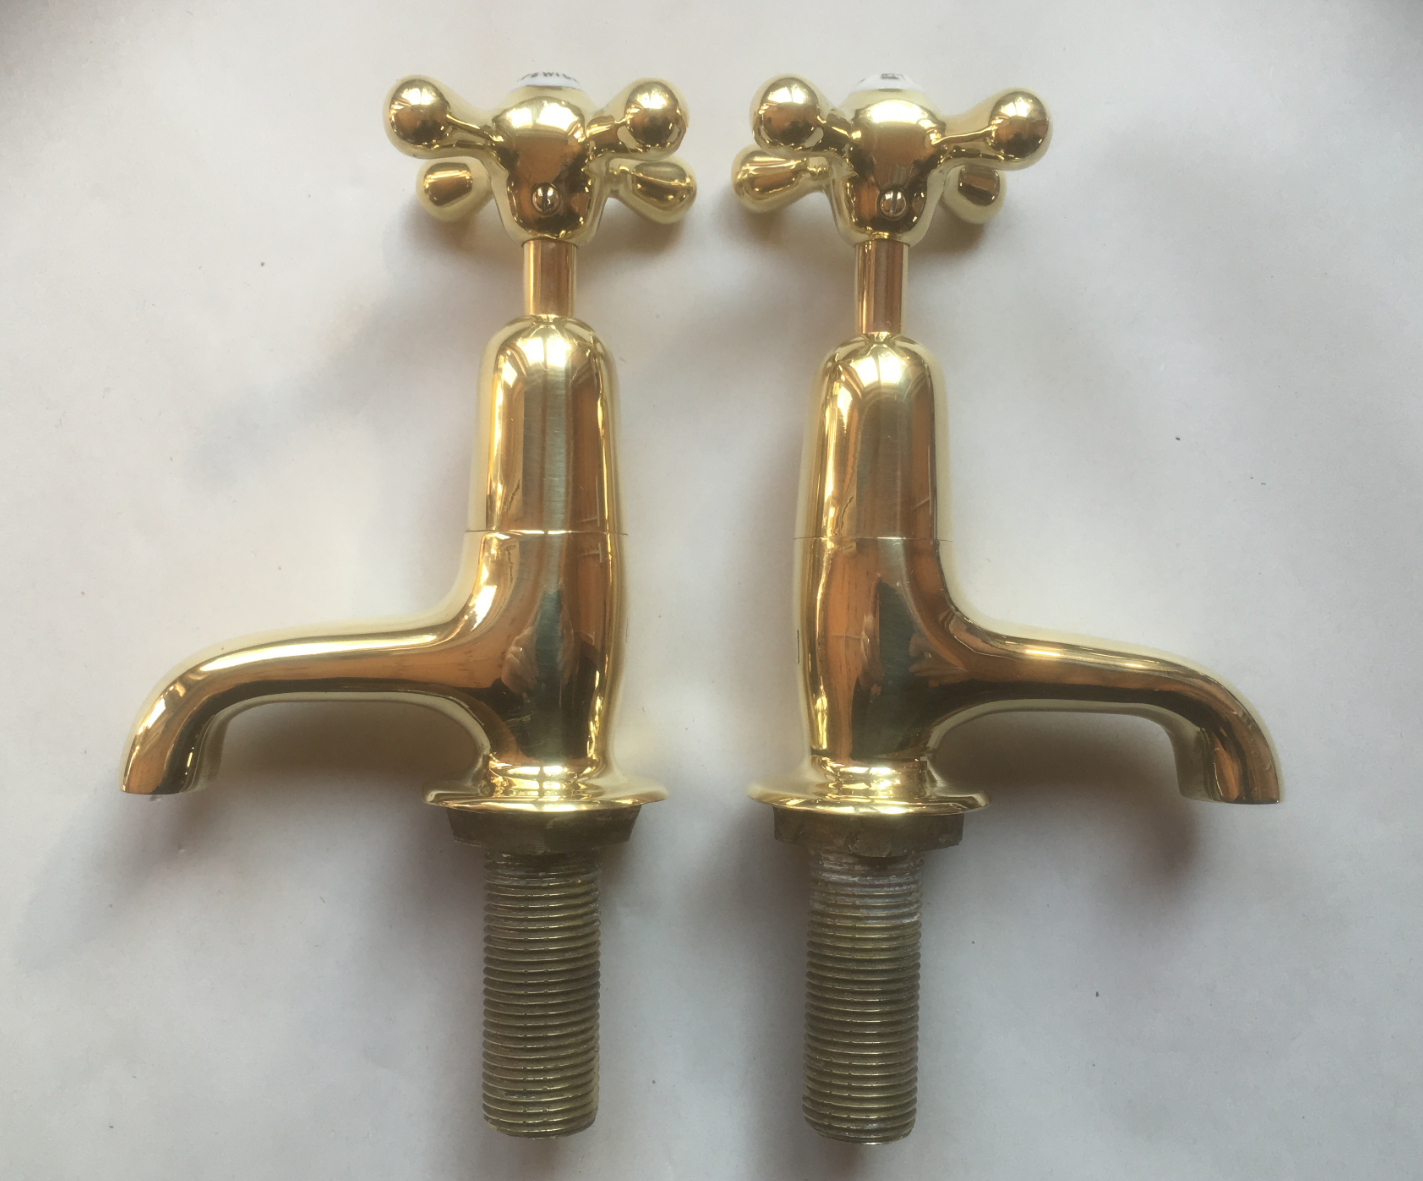 Old Brass Basin Taps.